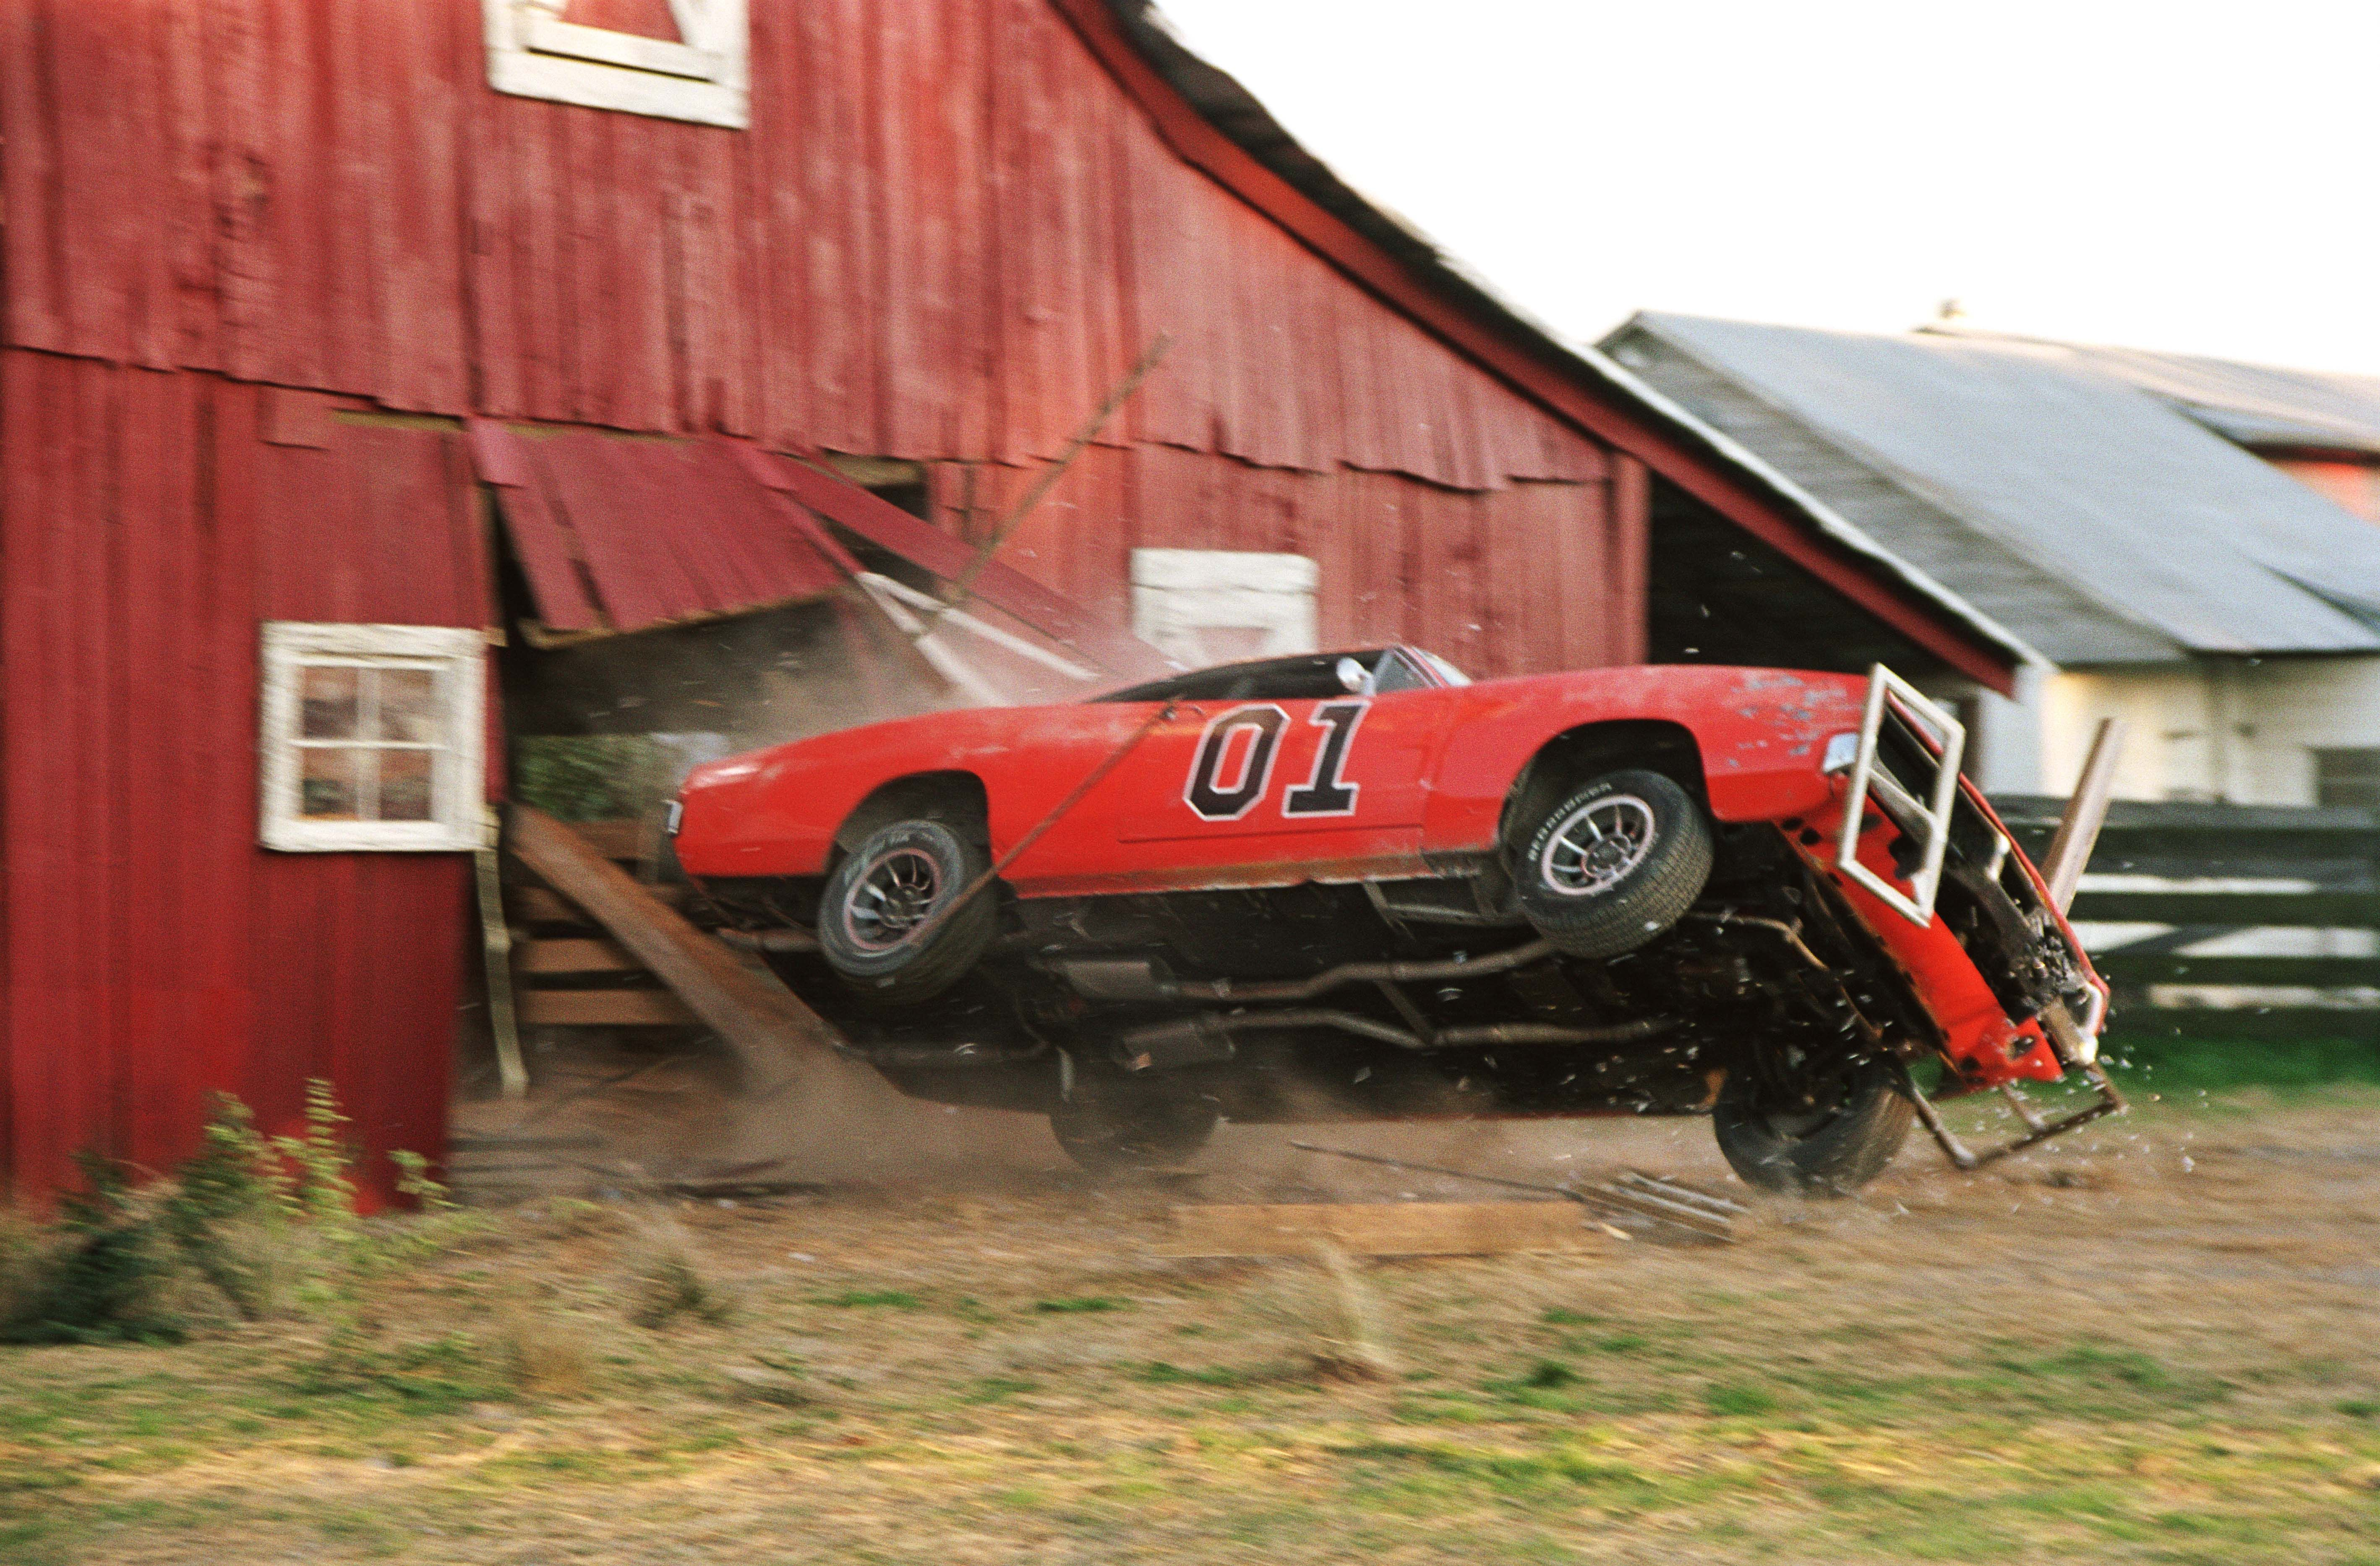 Ten Things You Didn't Know About The Dukes of Hazzard's